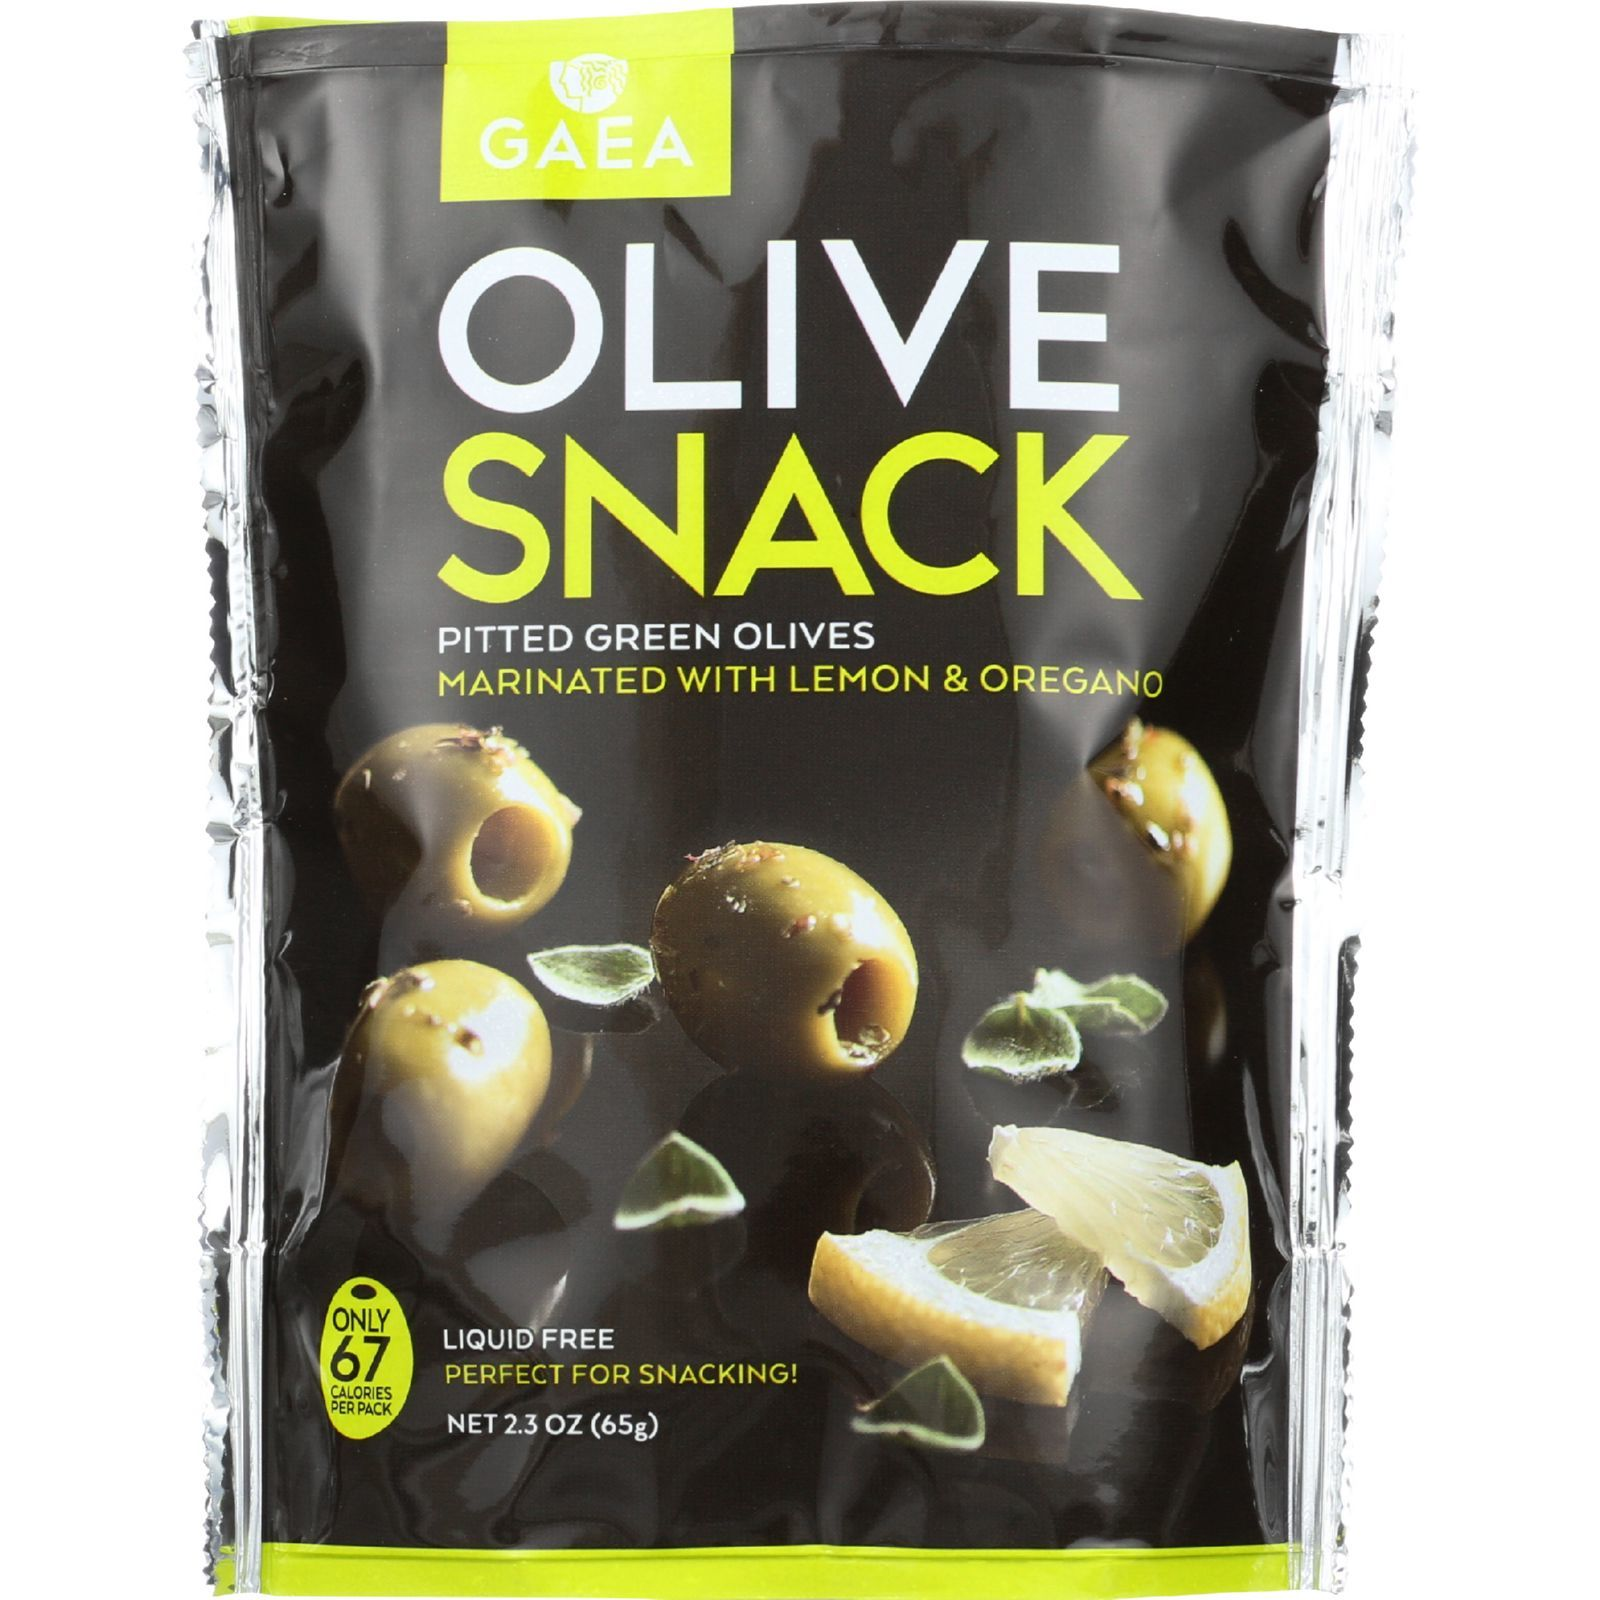 Gaea Olives - Green - Pitted - with Oregano and Lemon - Snack Pack - 2.3 oz - case of 8